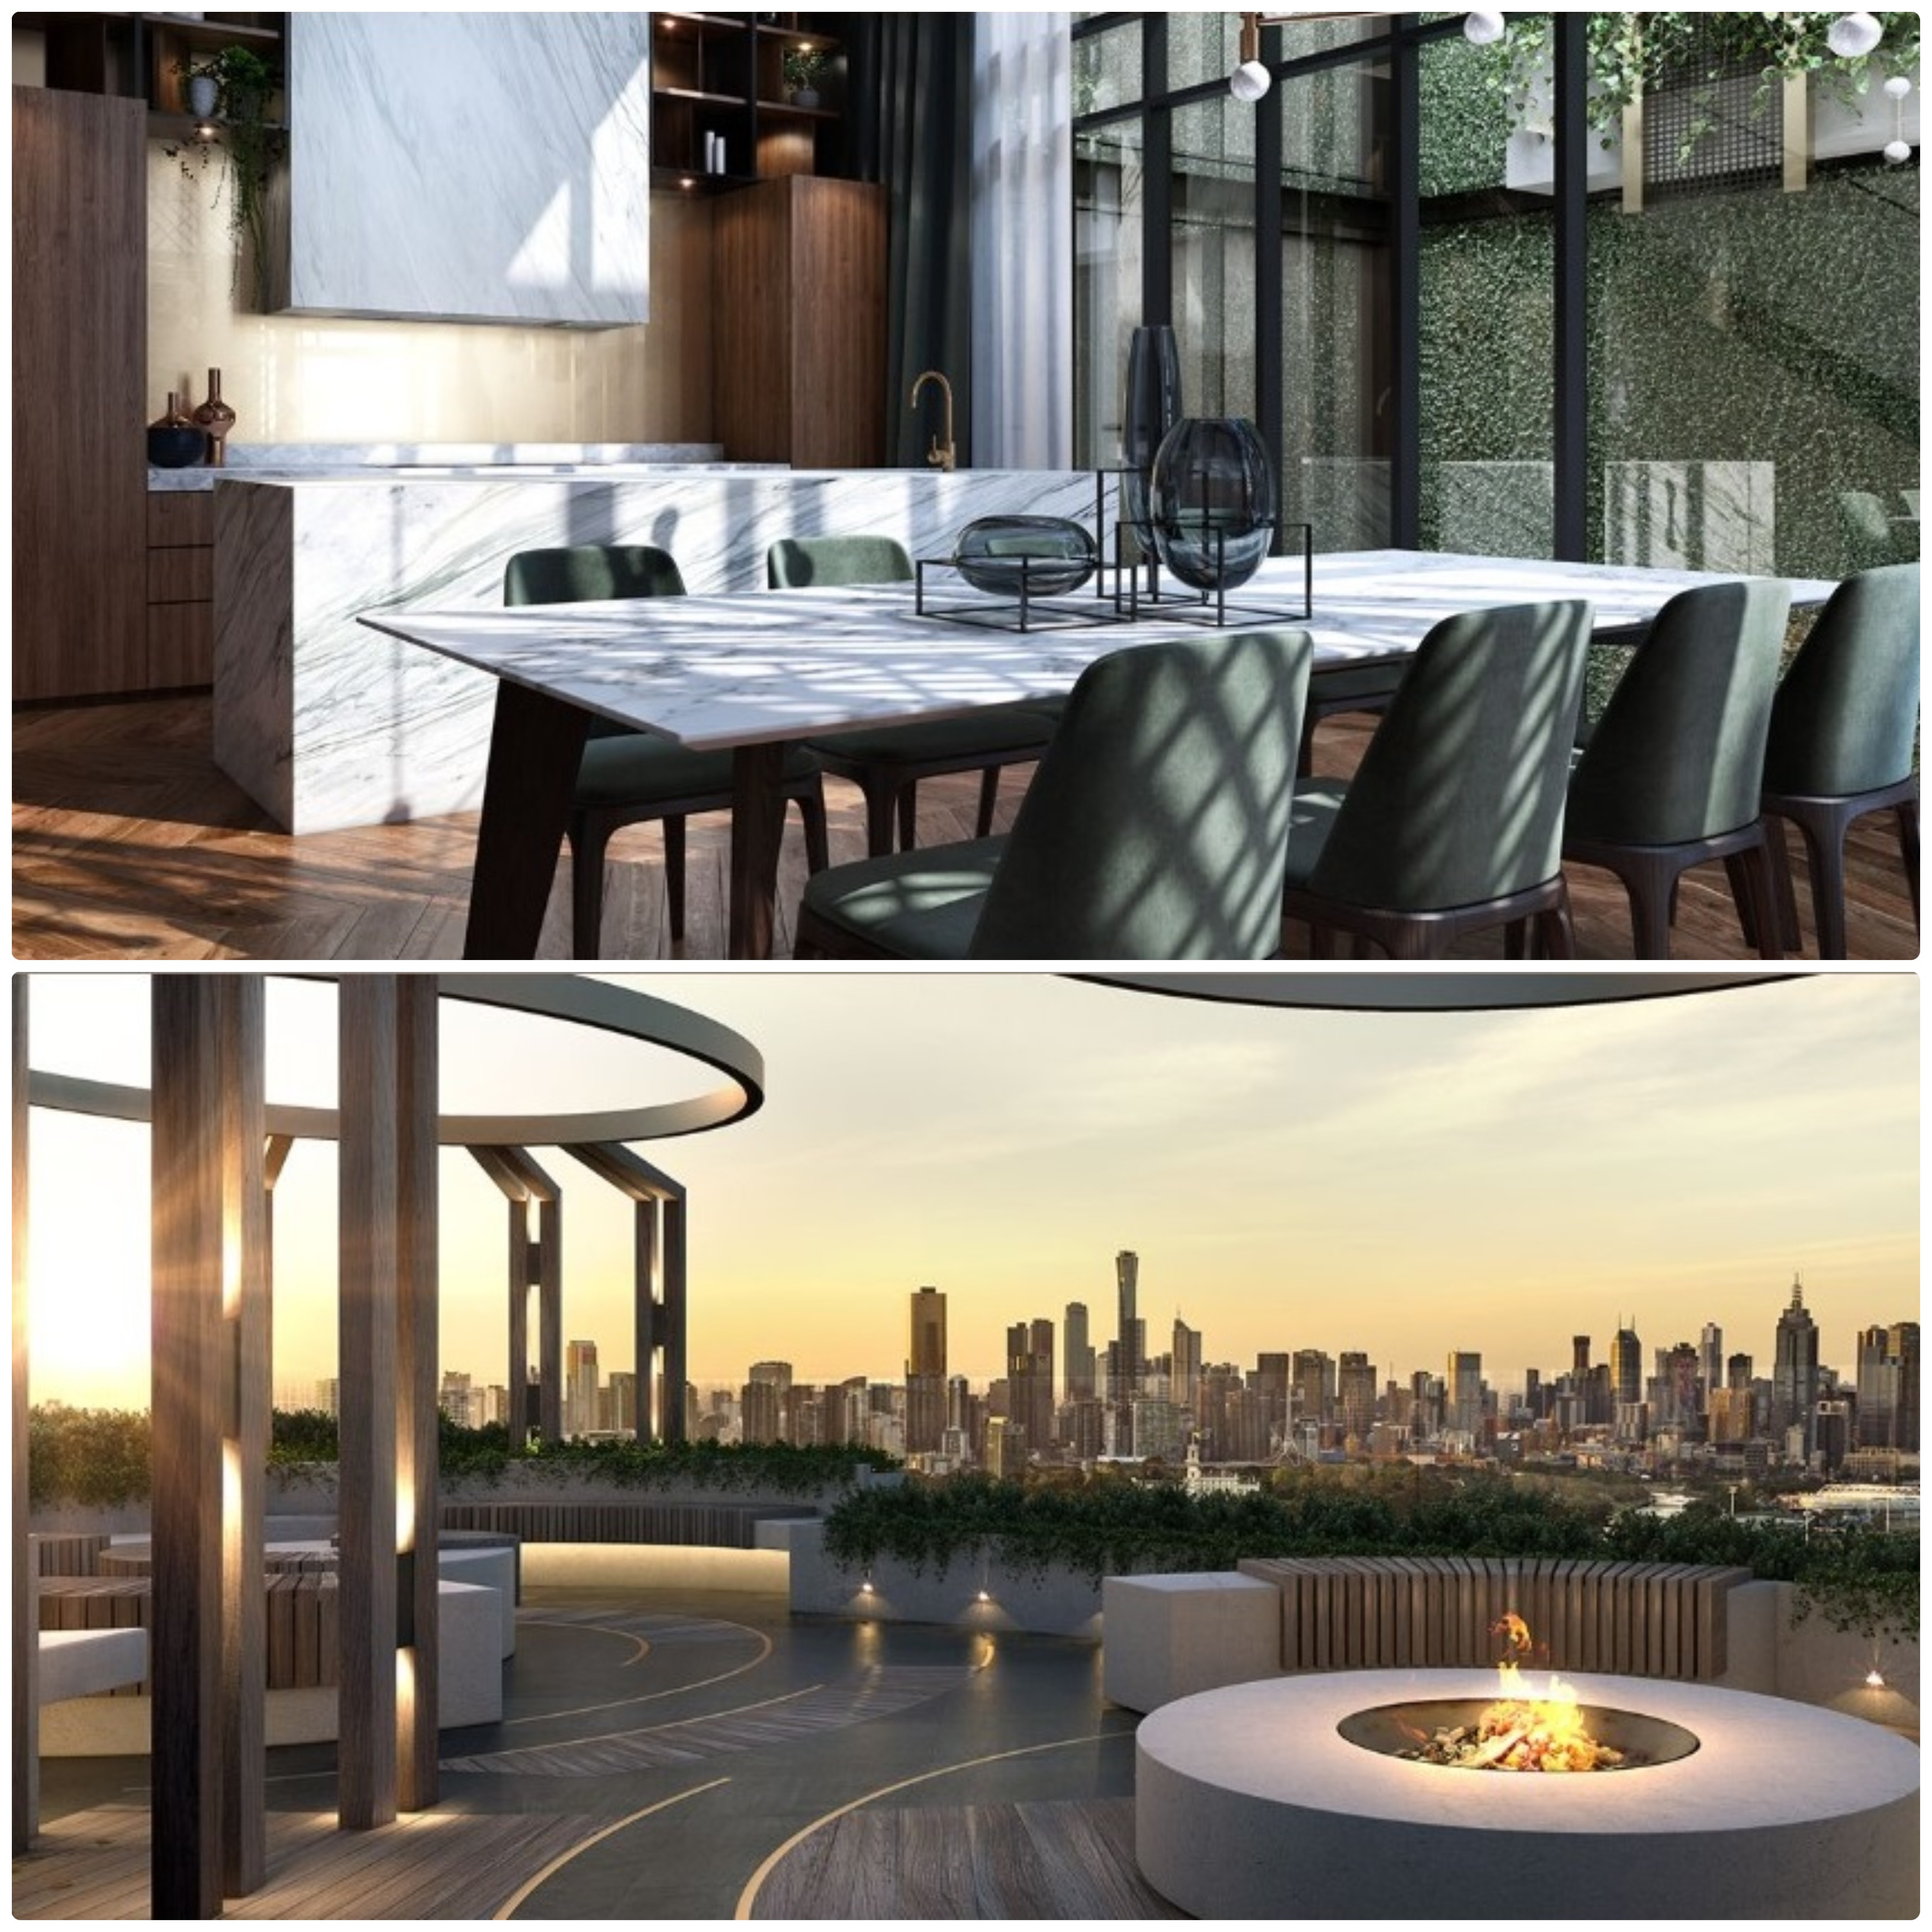 Global developer Eco World launched its first Melbourne project in South Yarra last year.